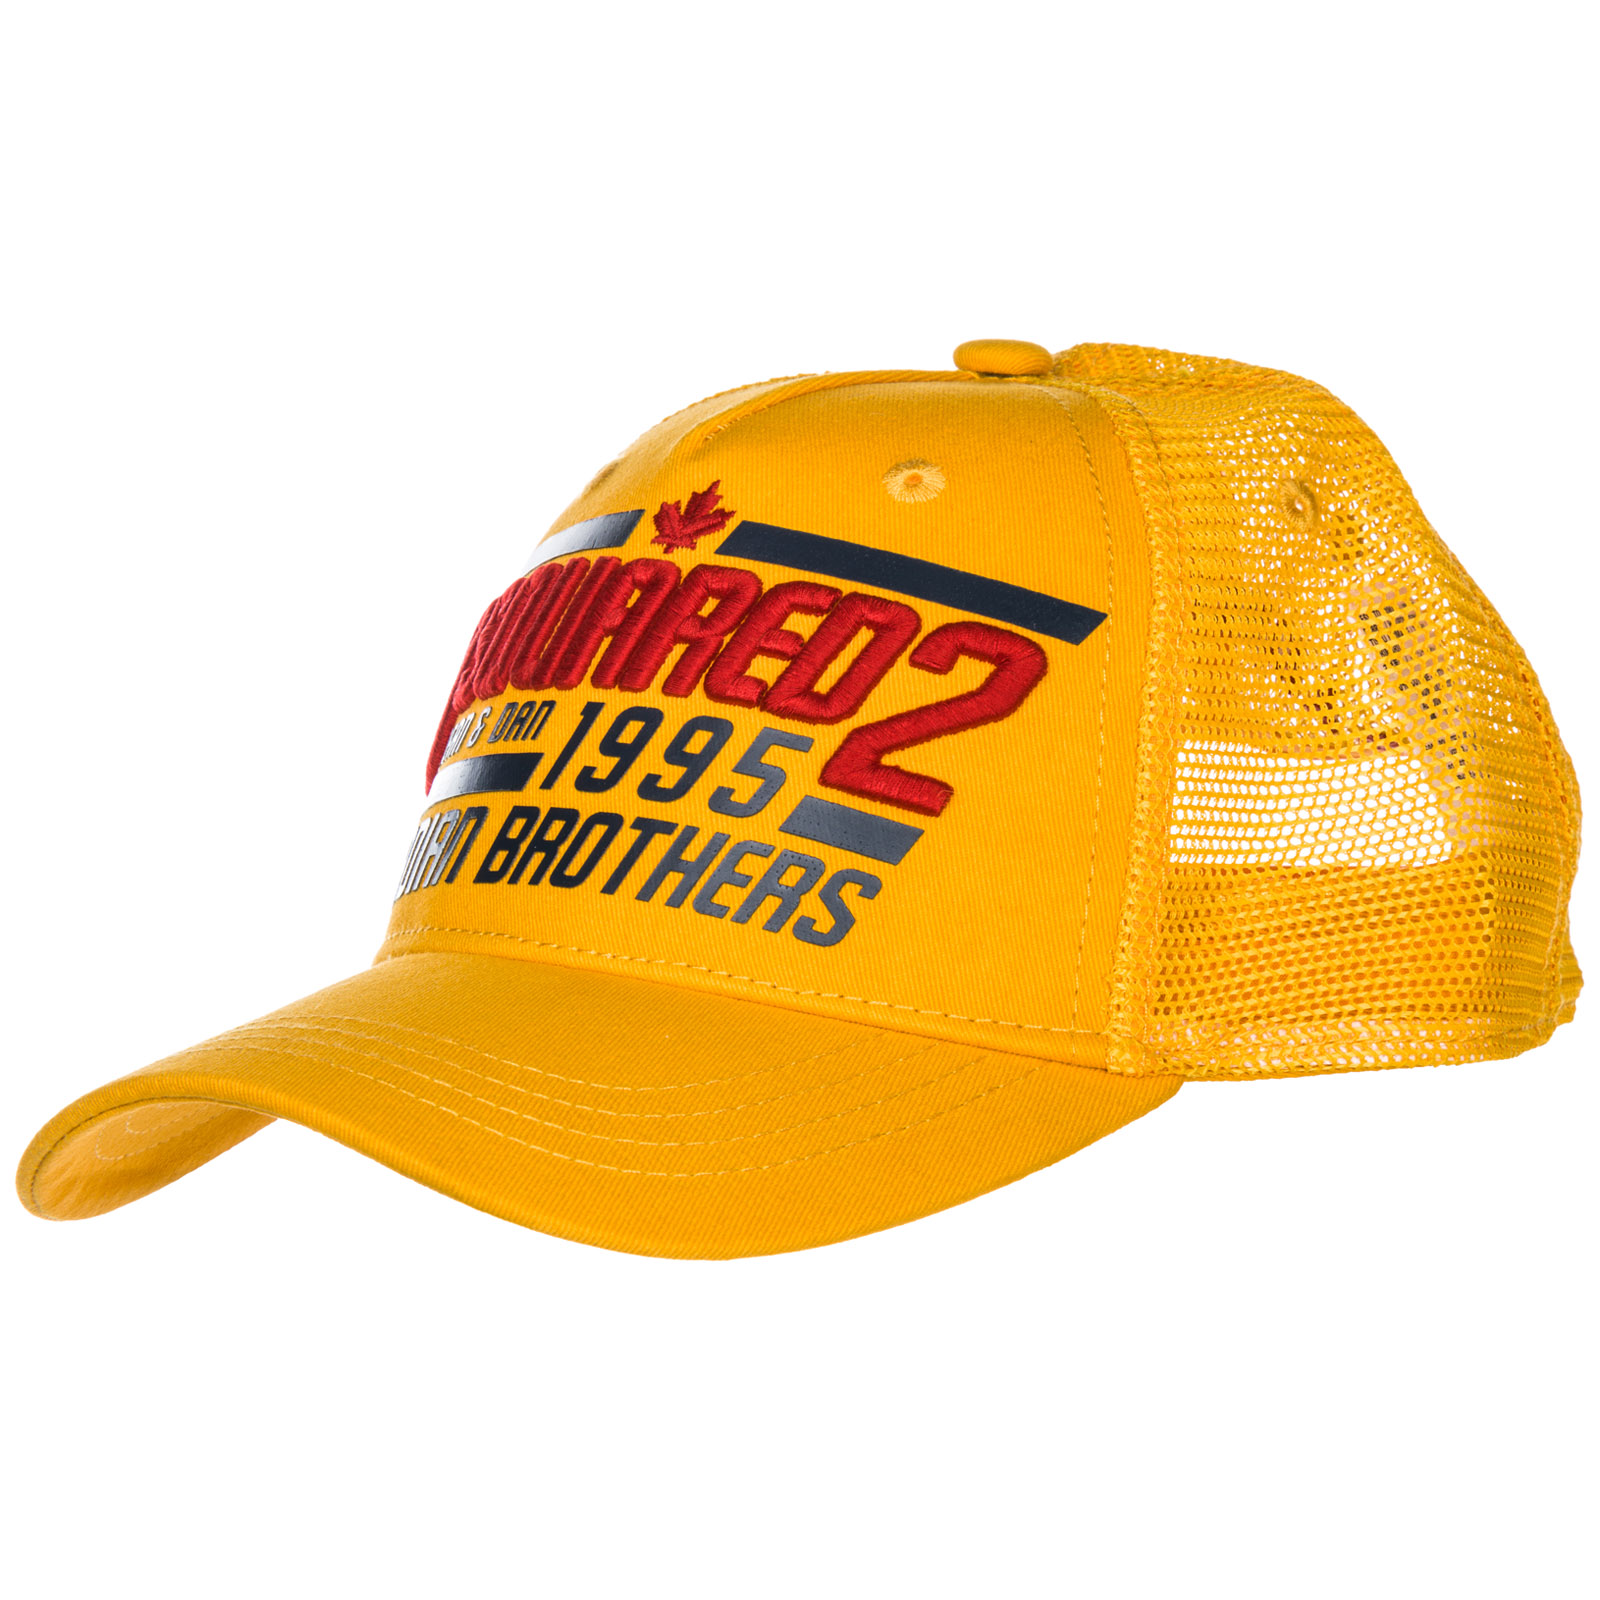 0d01123e13a11 Dsquared2 Adjustable Men s Cotton Hat Baseball Cap Canadian Brothers In  Yellow